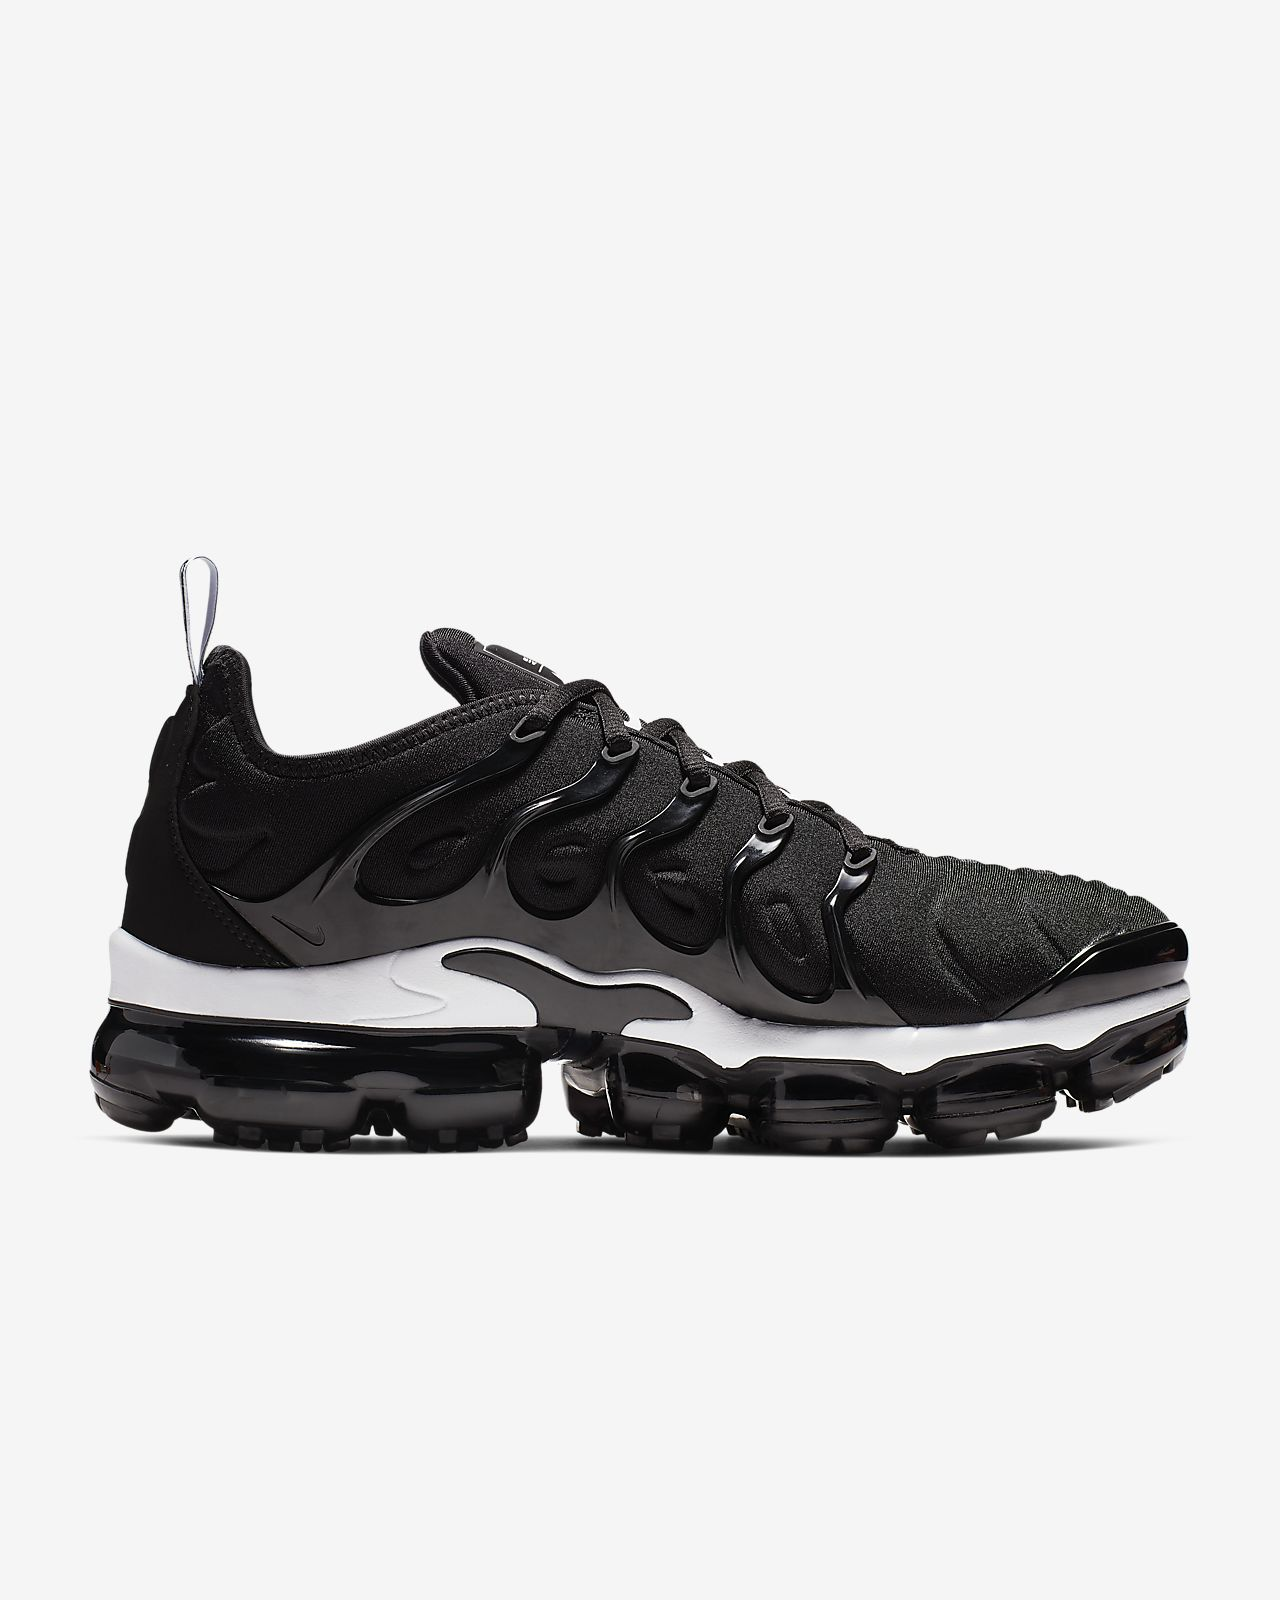 competitive price 6d908 a8eaa ... Buty męskie Nike Air VaporMax Plus